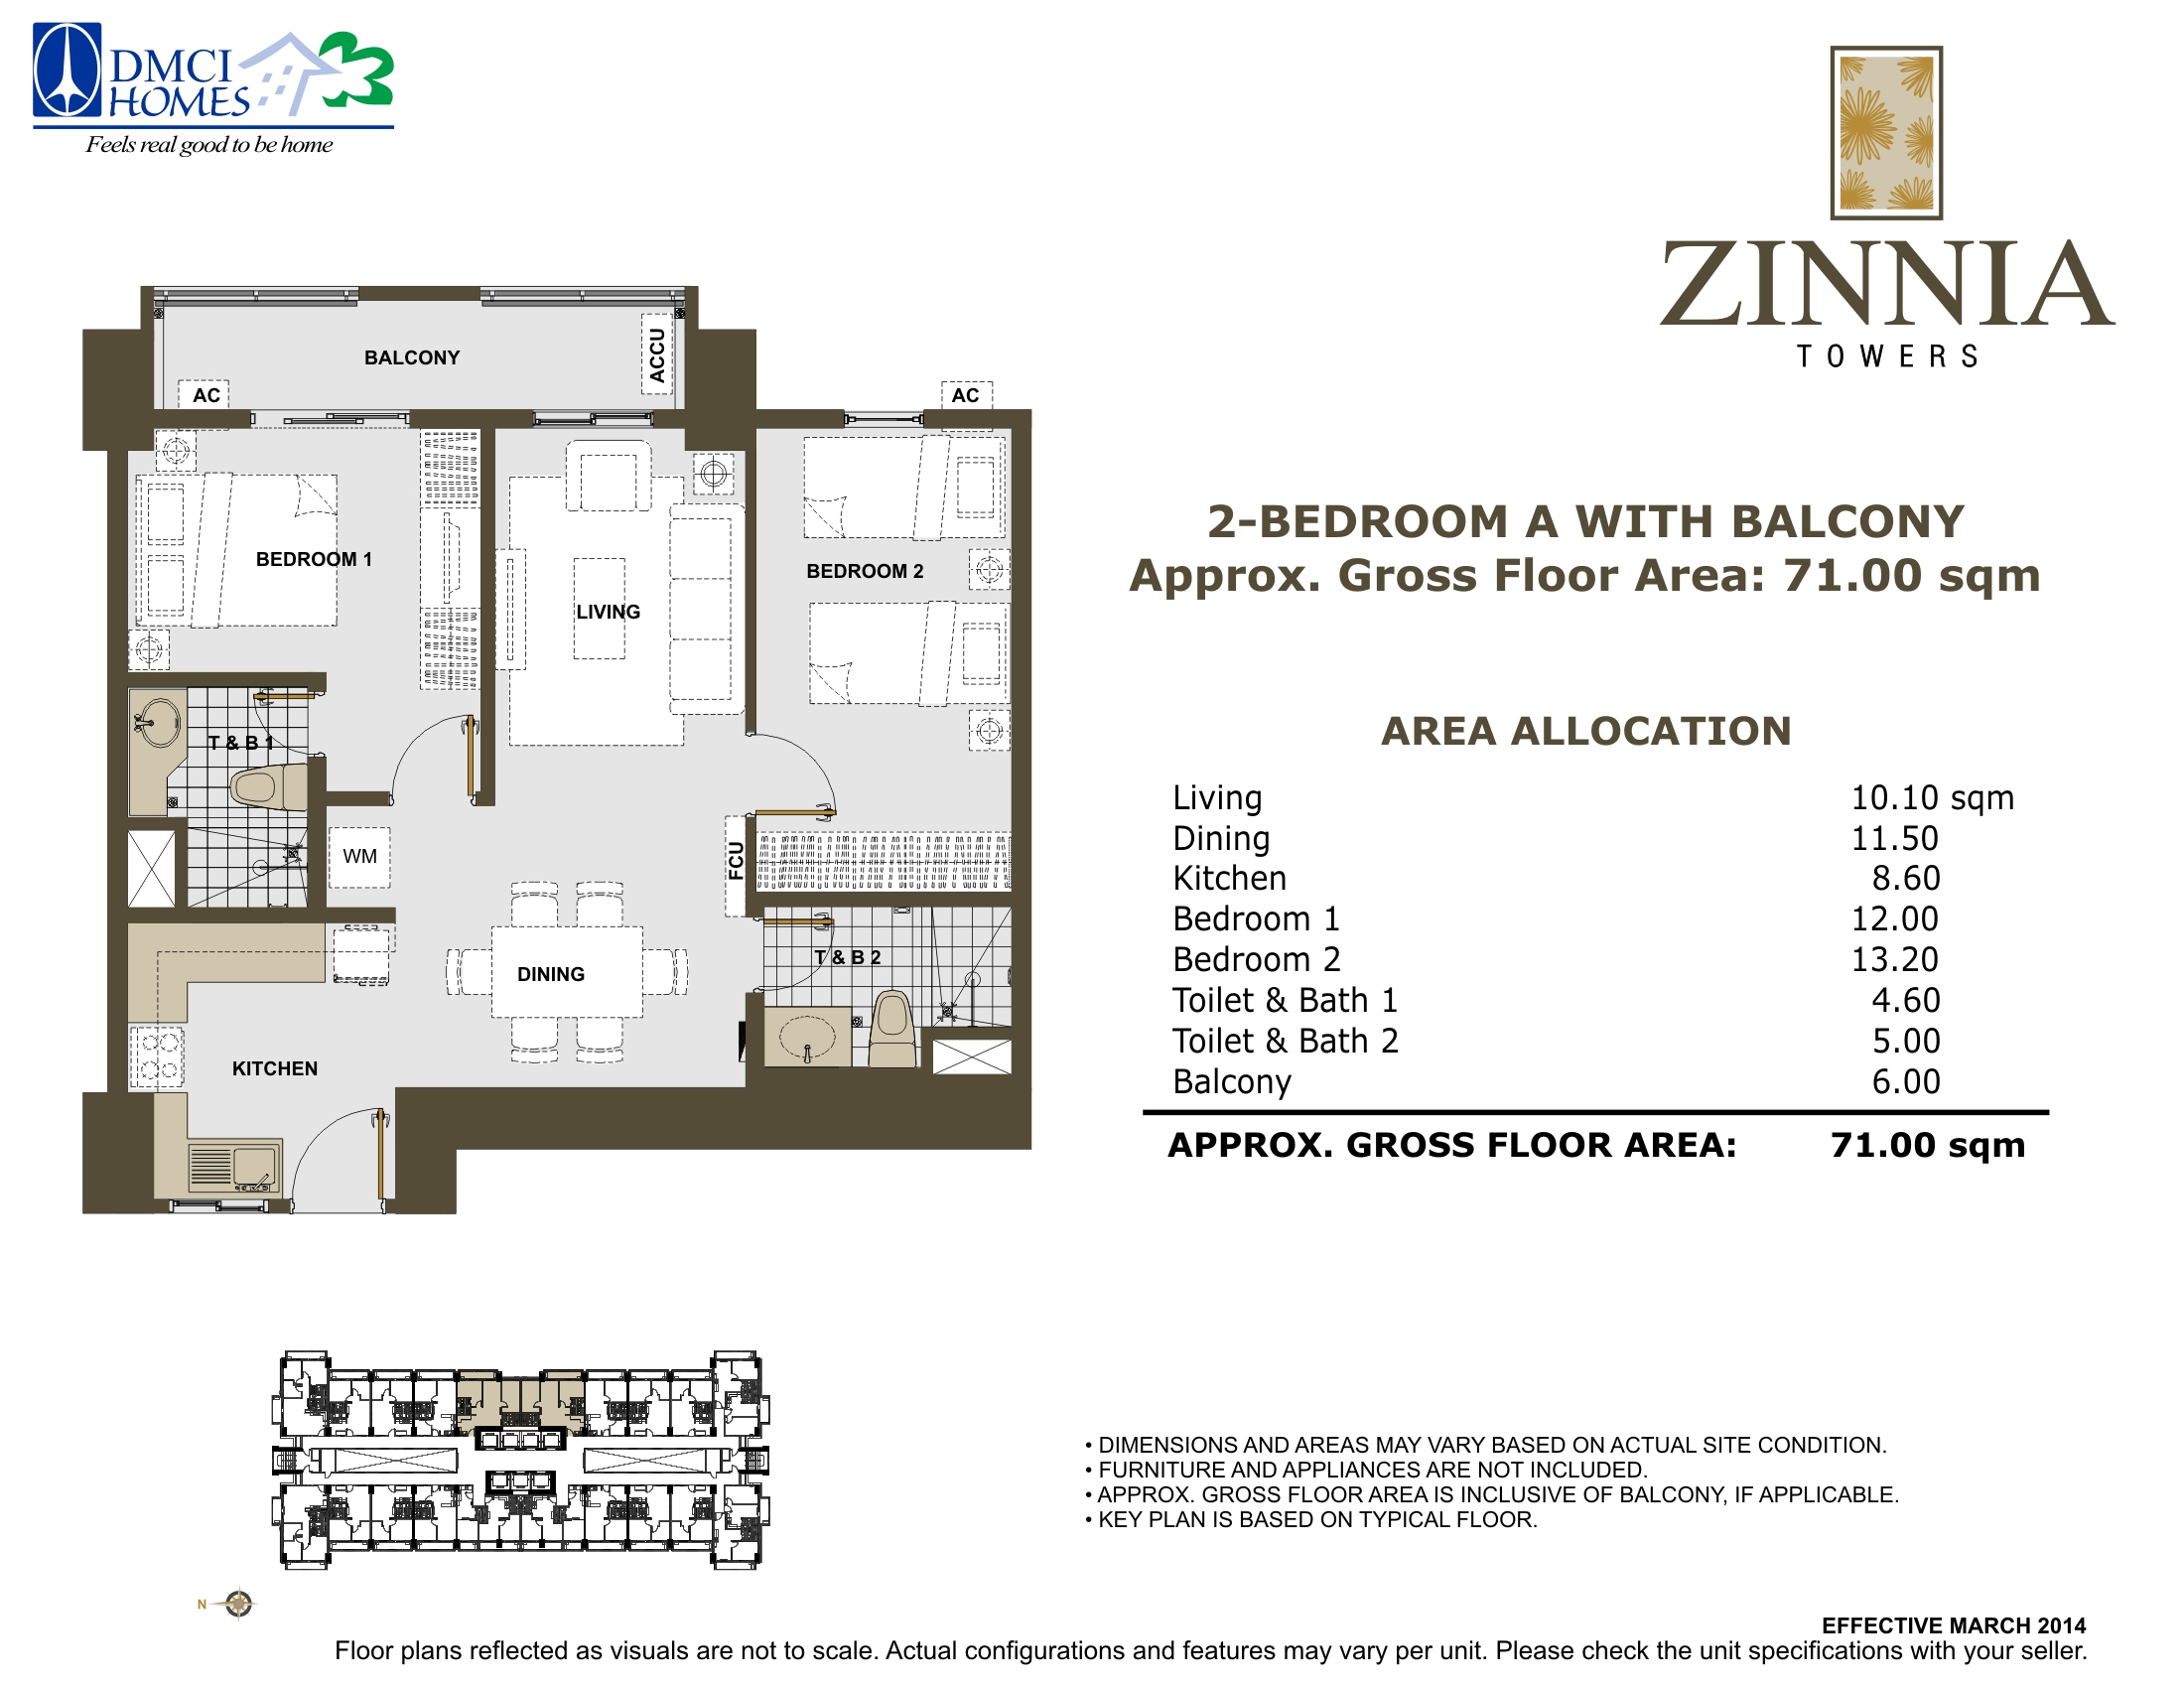 zinnia-towers-2bedroom-a-with-balcony-71 sqm